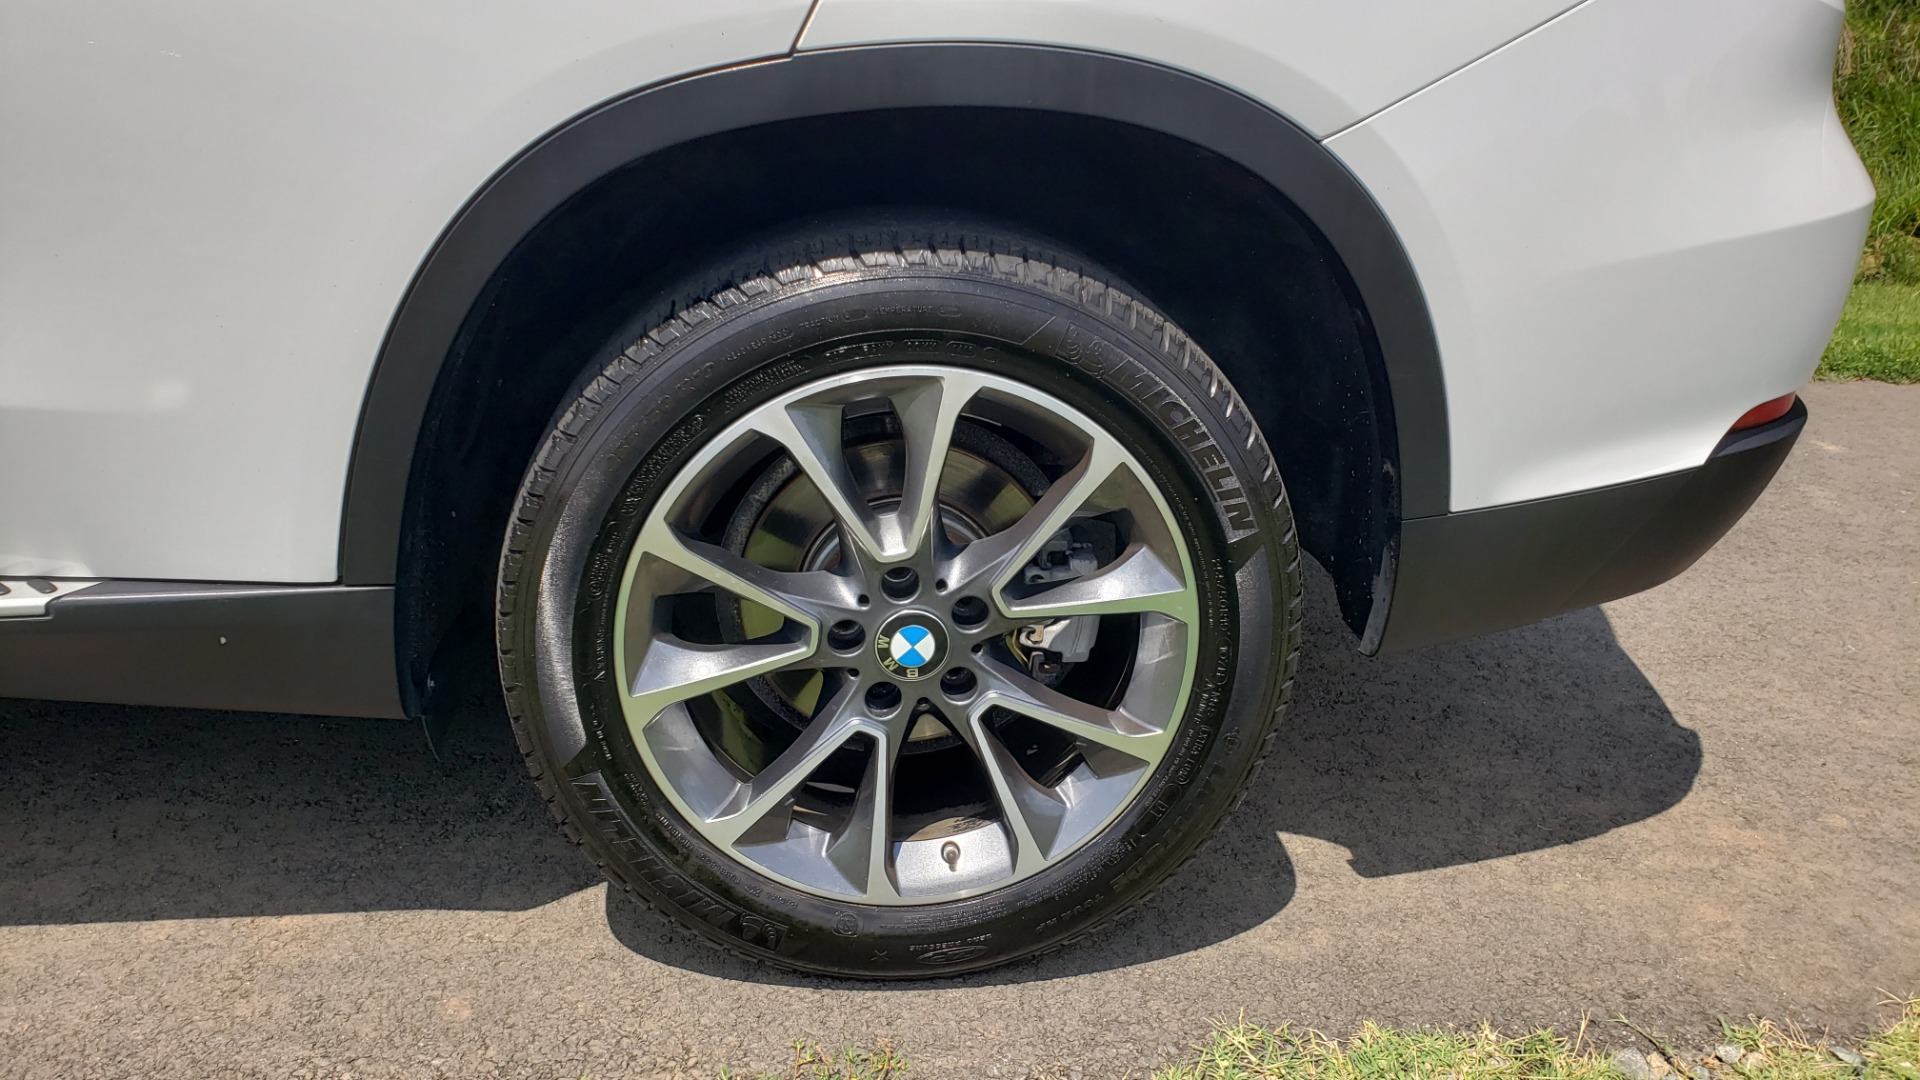 Used 2017 BMW X5 XDRIVE35I / NAV / SUNROOF / RUNNING BOARDS / REARVIEW for sale $33,995 at Formula Imports in Charlotte NC 28227 14